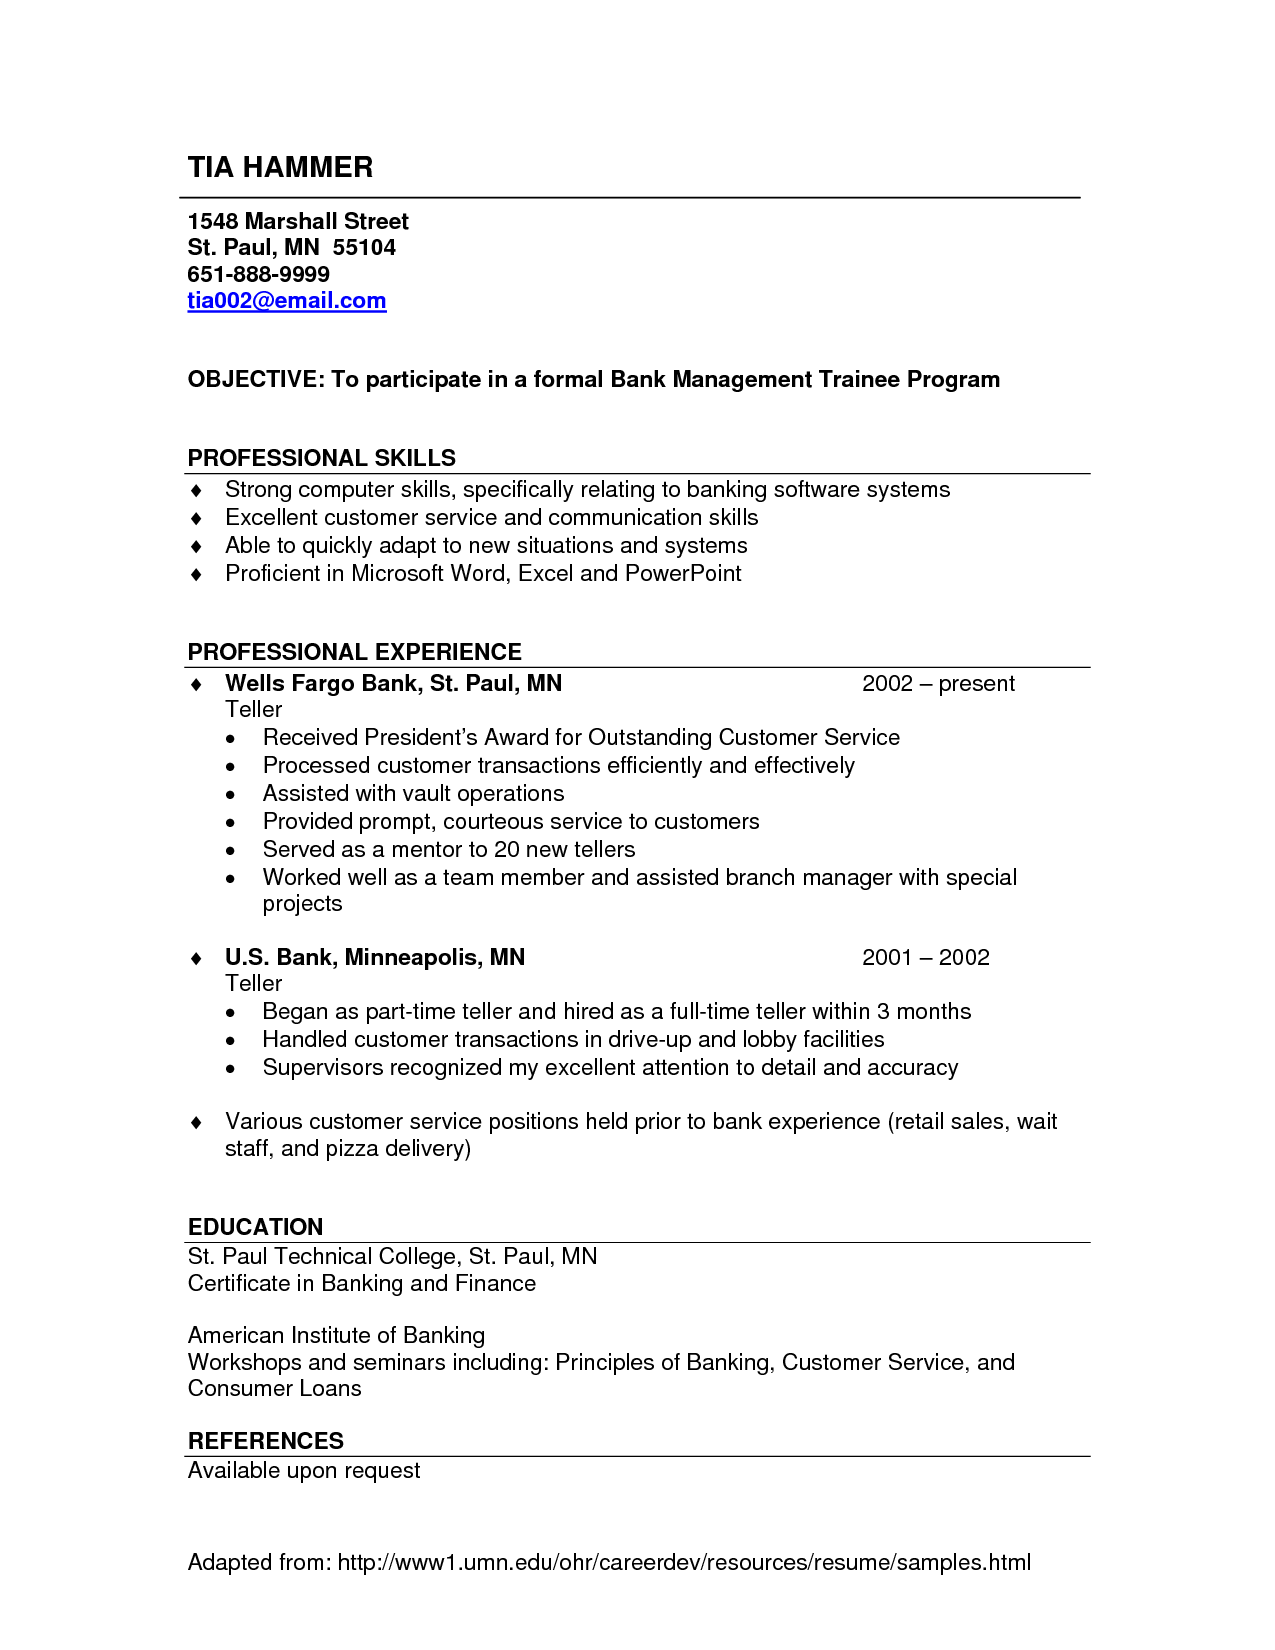 Leadership Skills For Resume For Bank Teller Position Interesting Resume Sample Cover Letter